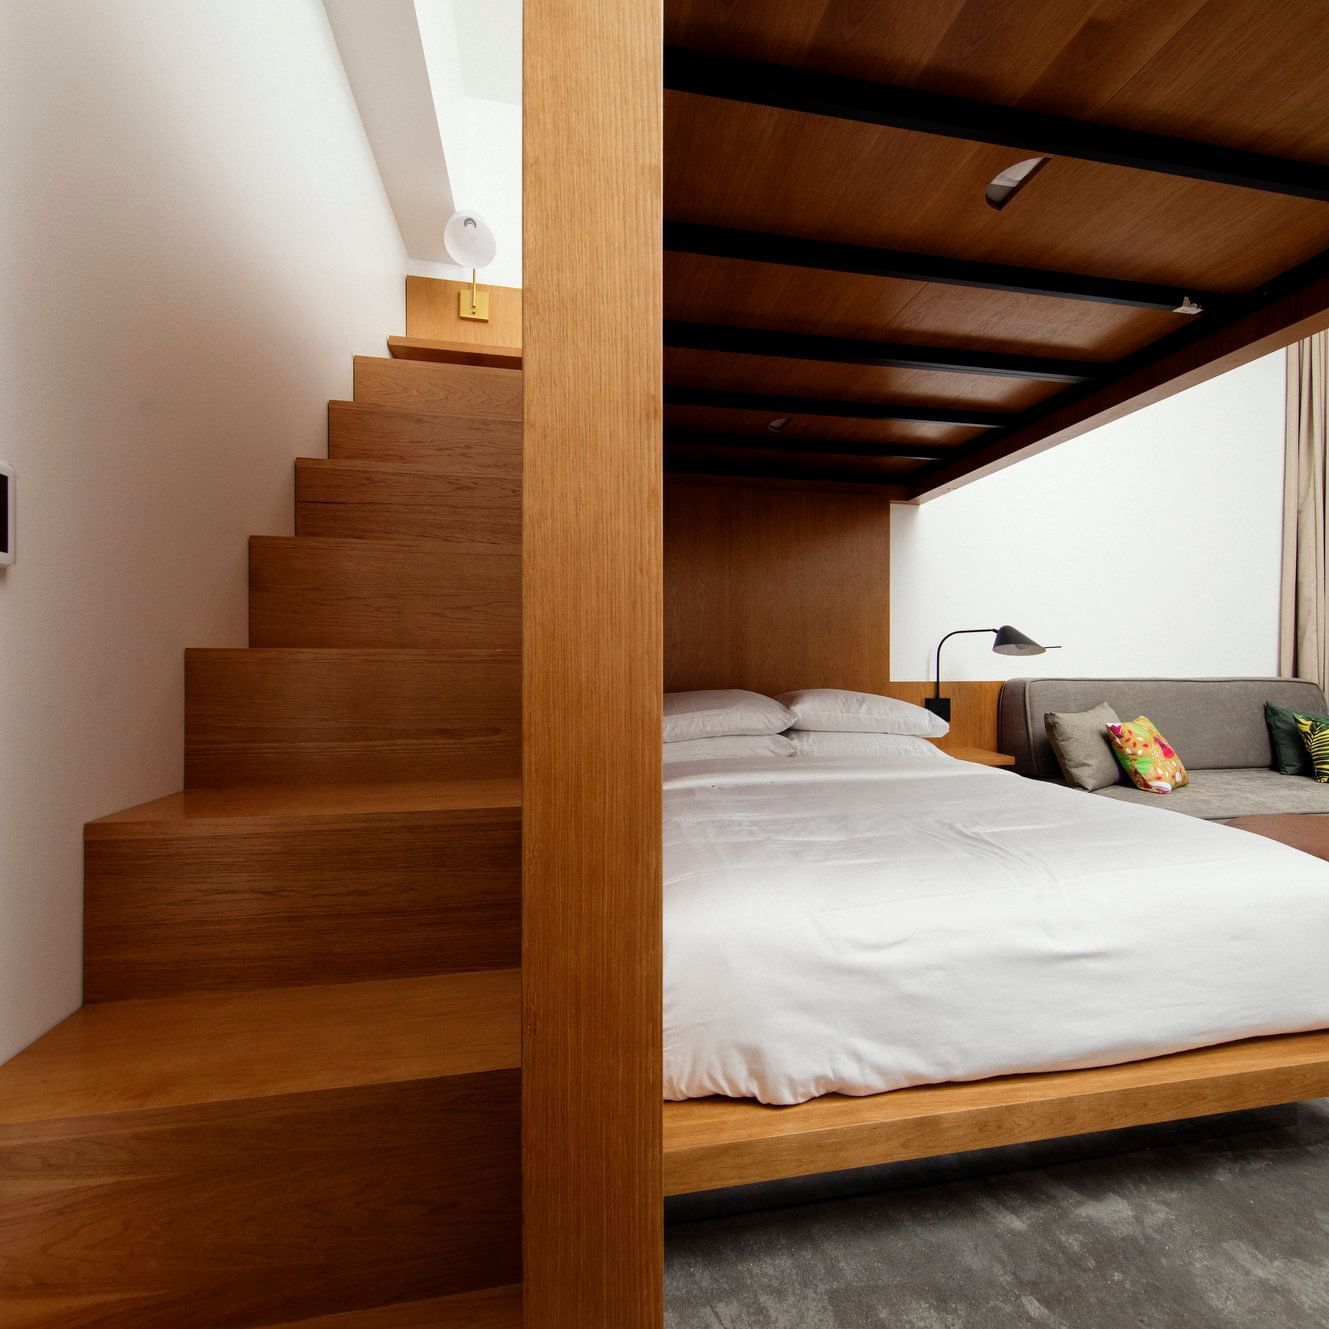 room with loft-style bed and staircase